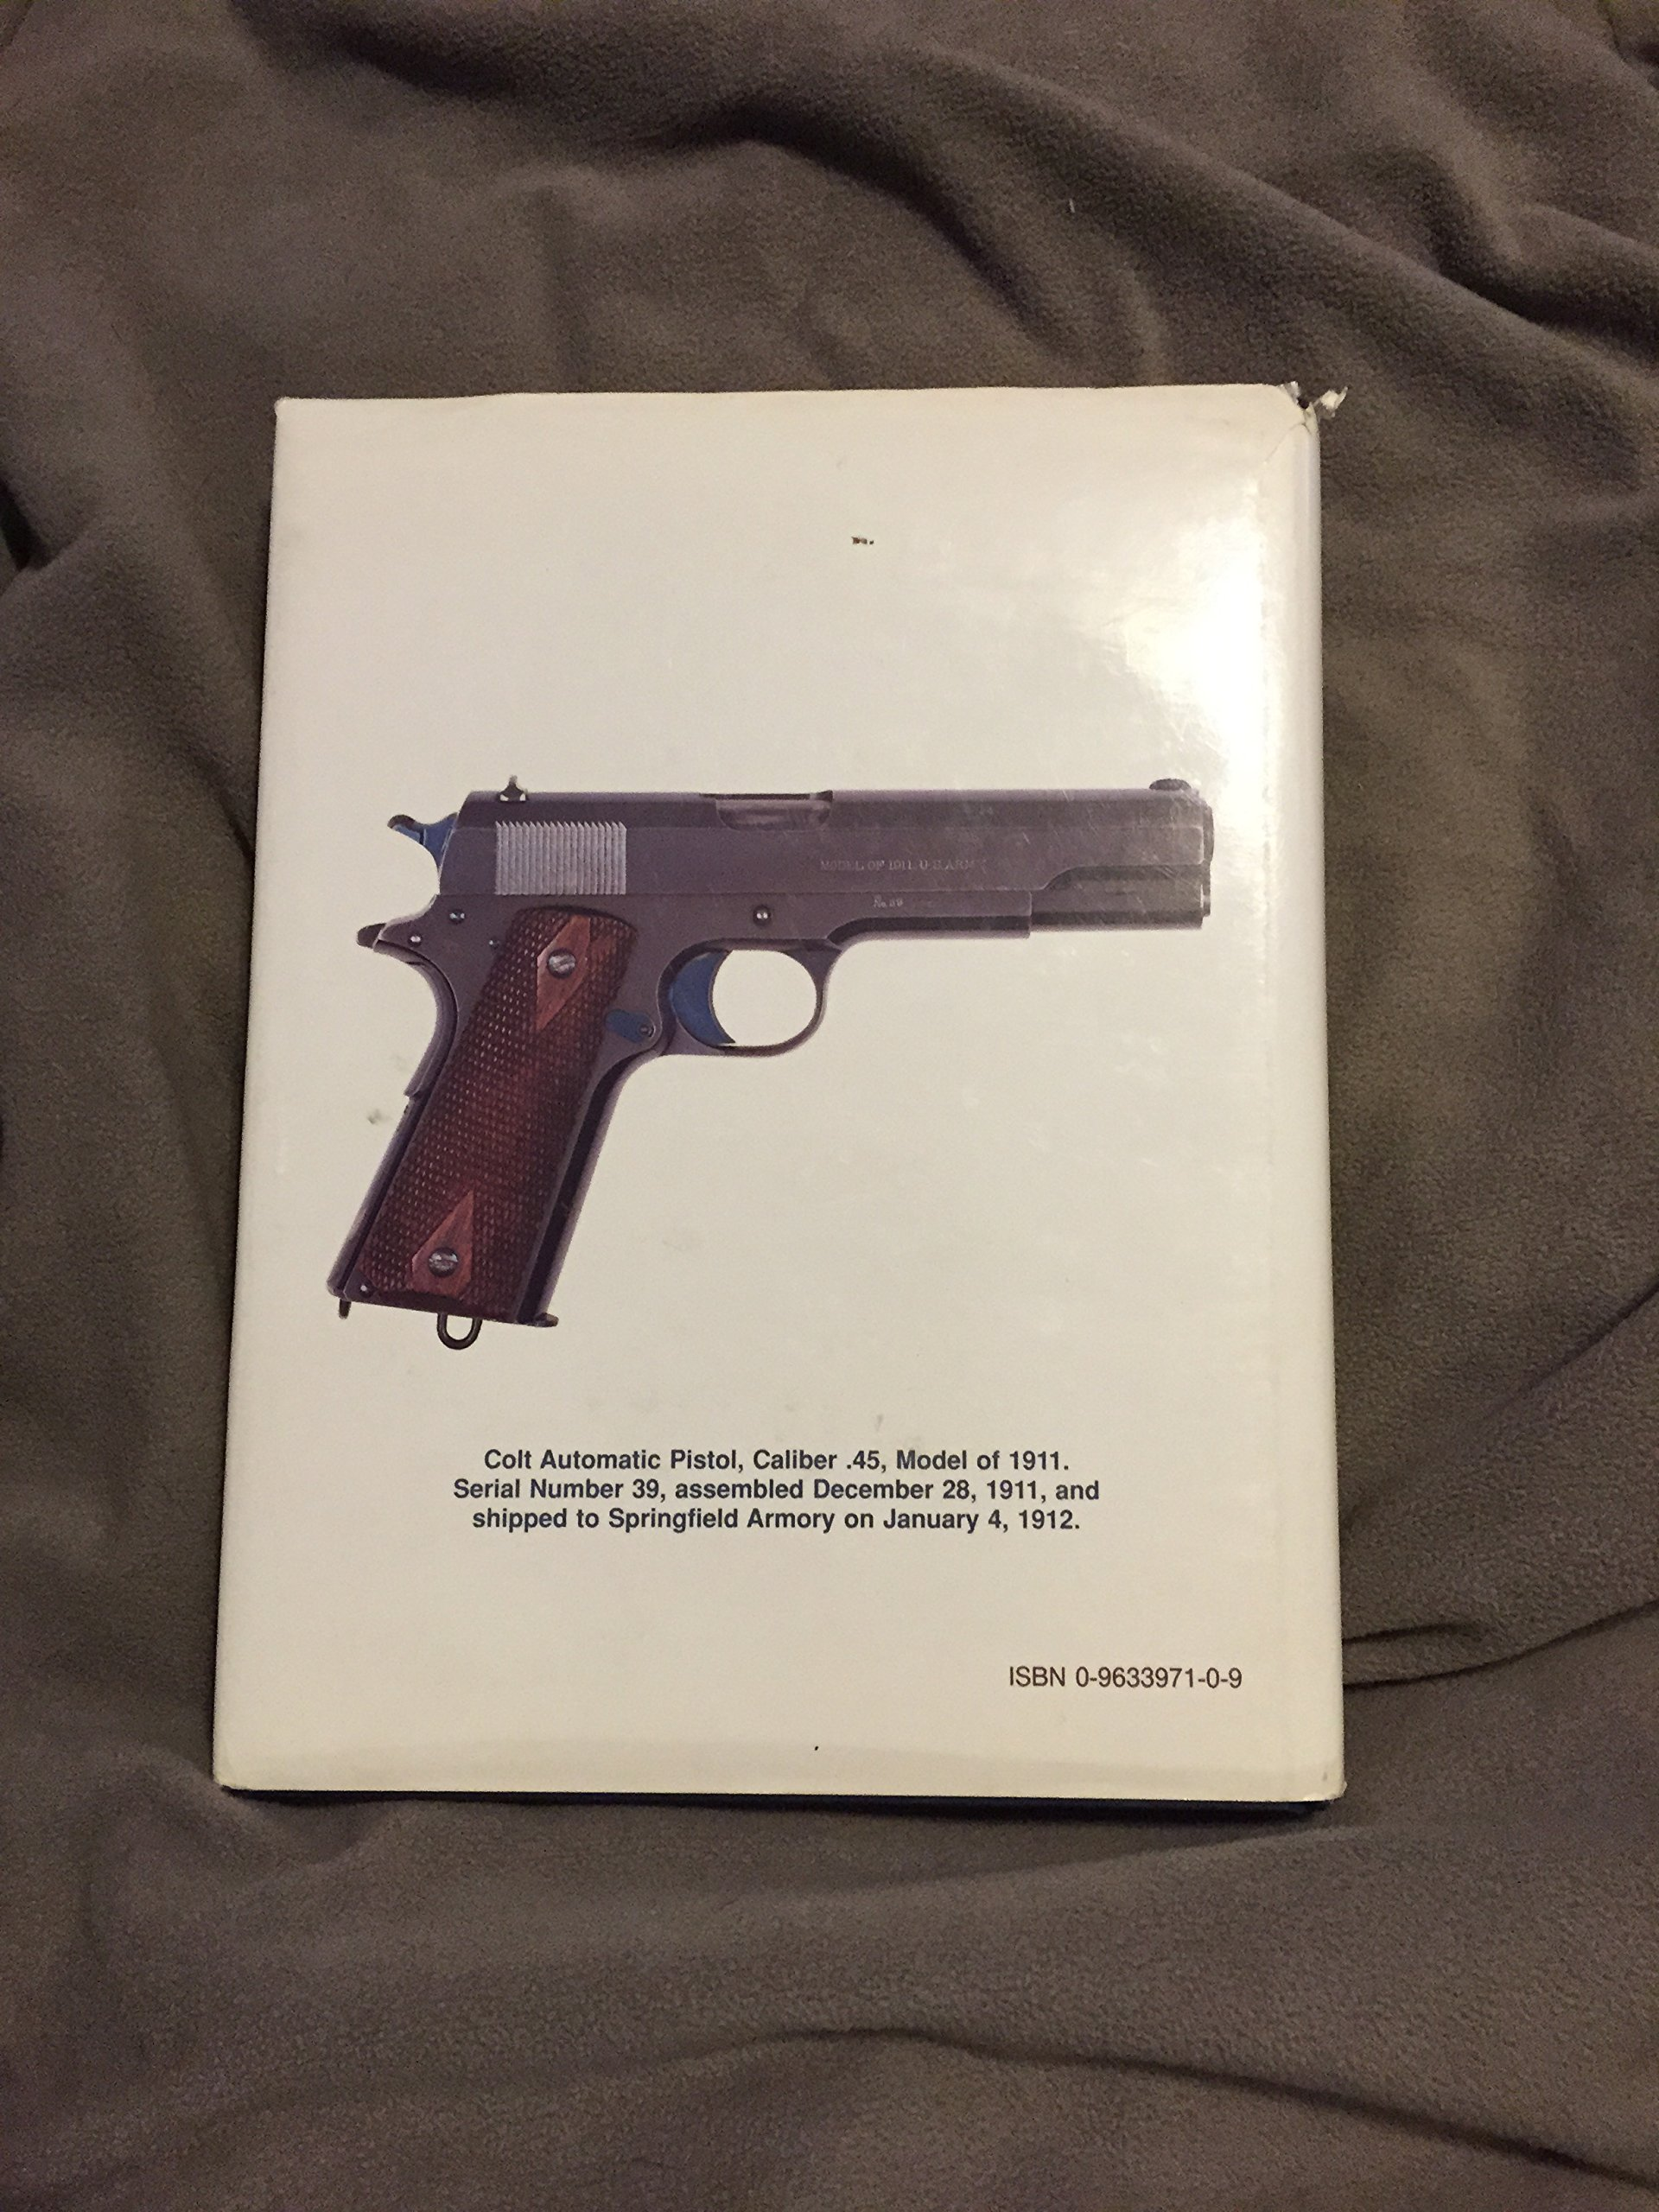 Colt .45 service pistols: Models of 1911 and 1911A1.: Charles W Clawson:  9780963397102: Amazon.com: Books